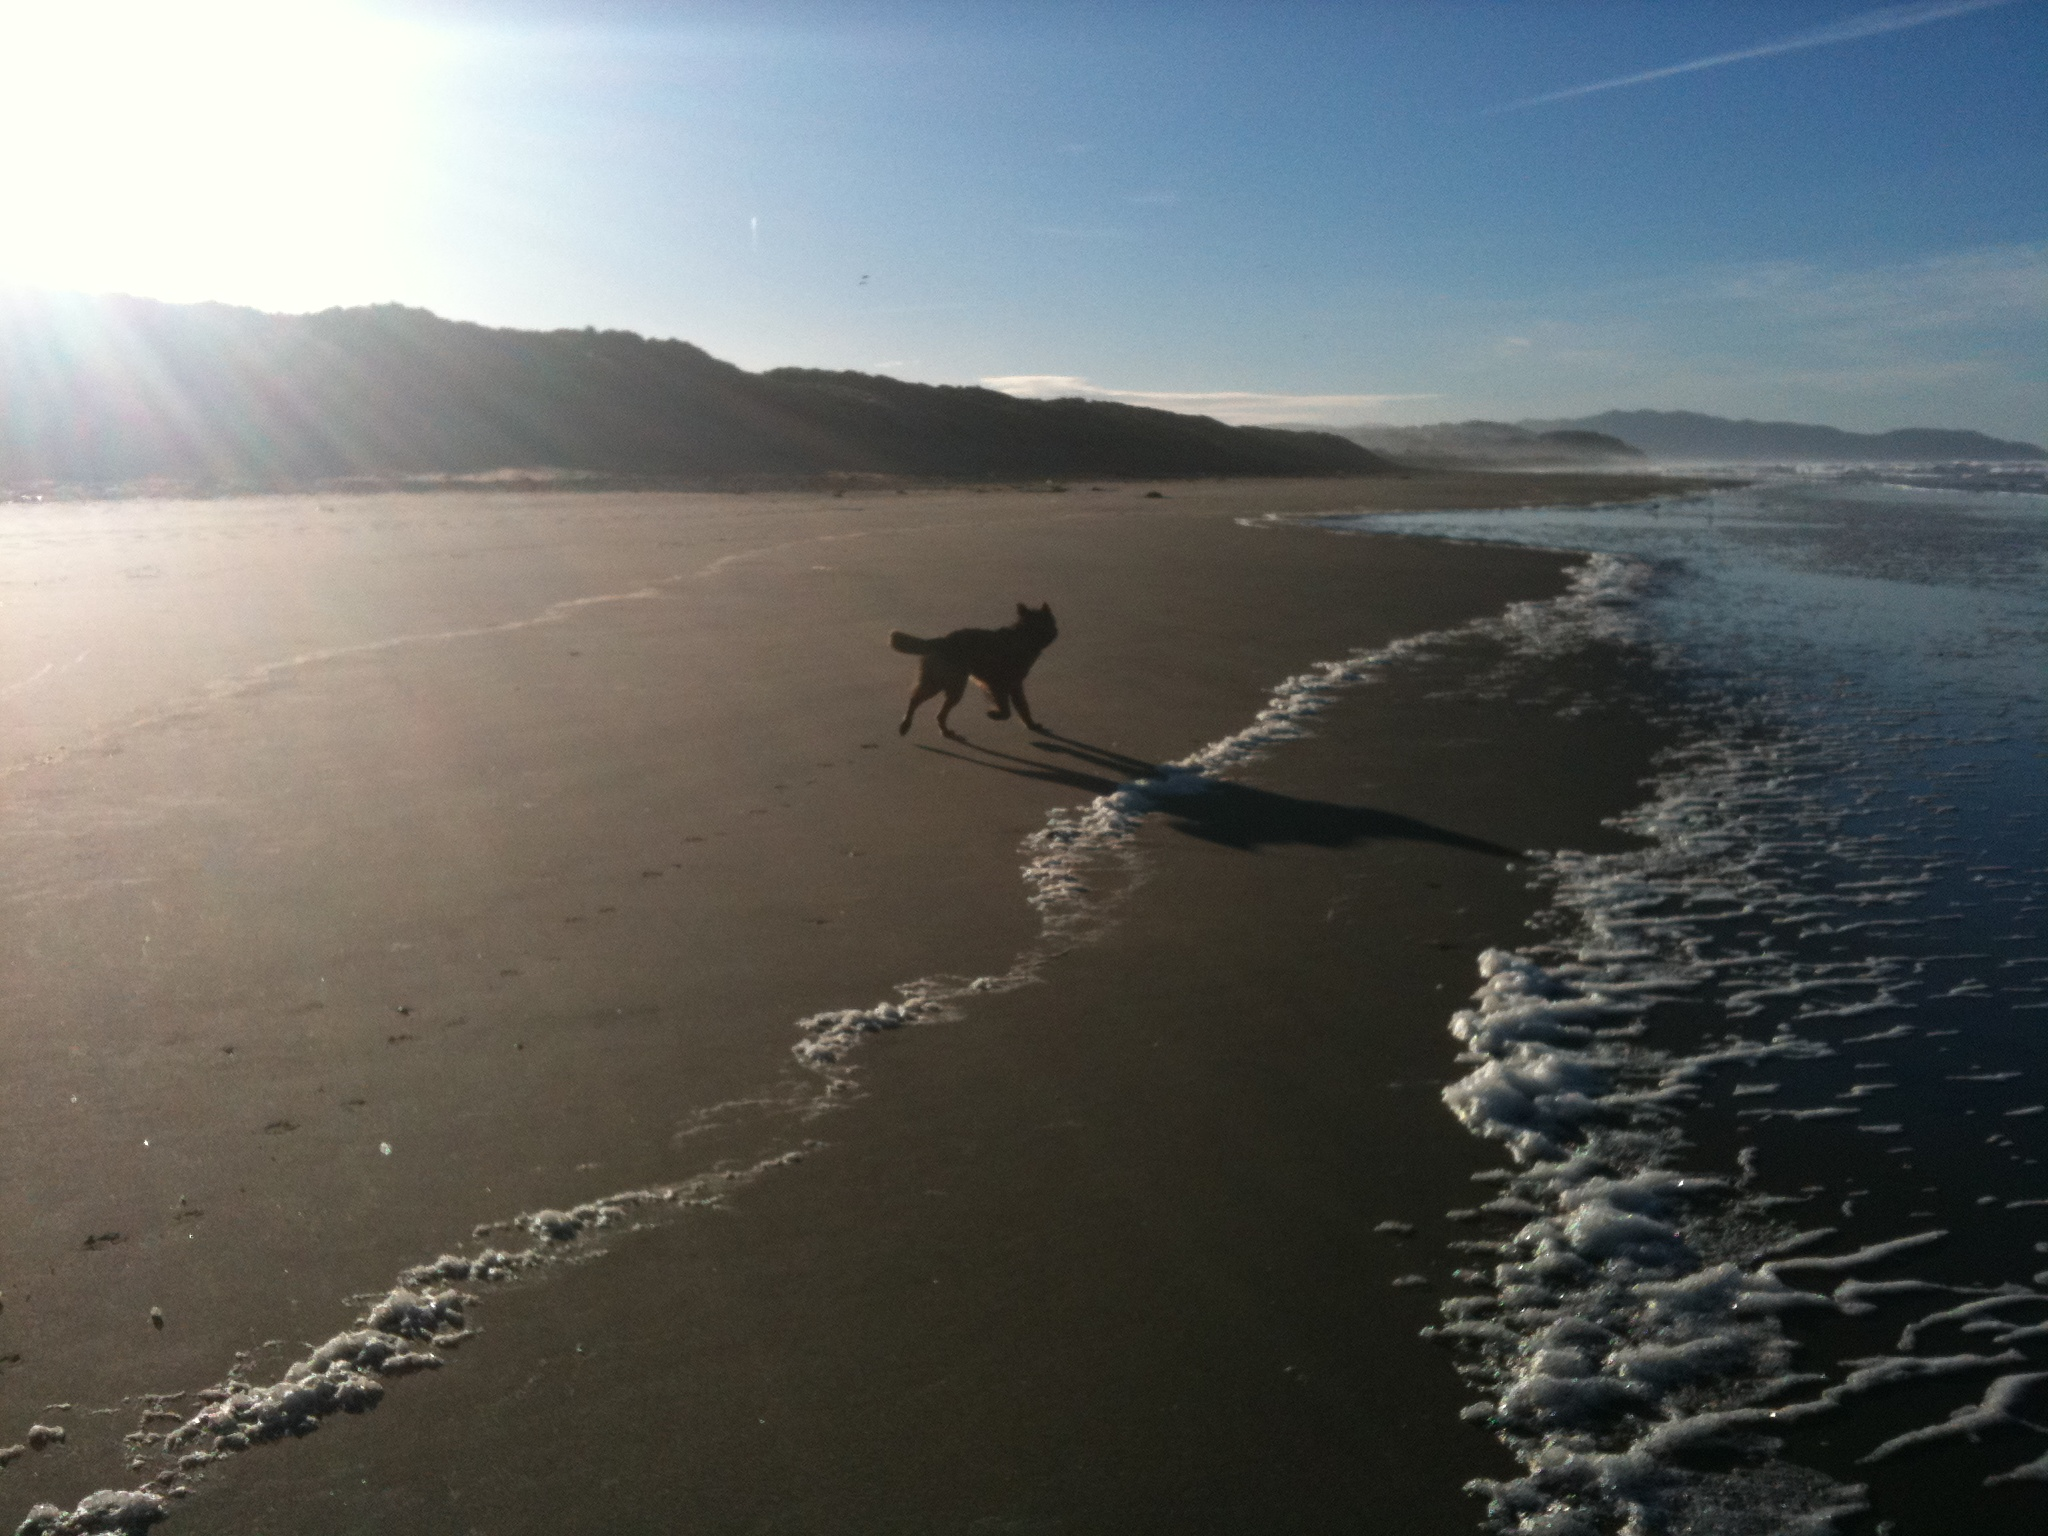 There's enough beach to go around.  Let the dogs run wild. (photo by D. Speredelozzi)